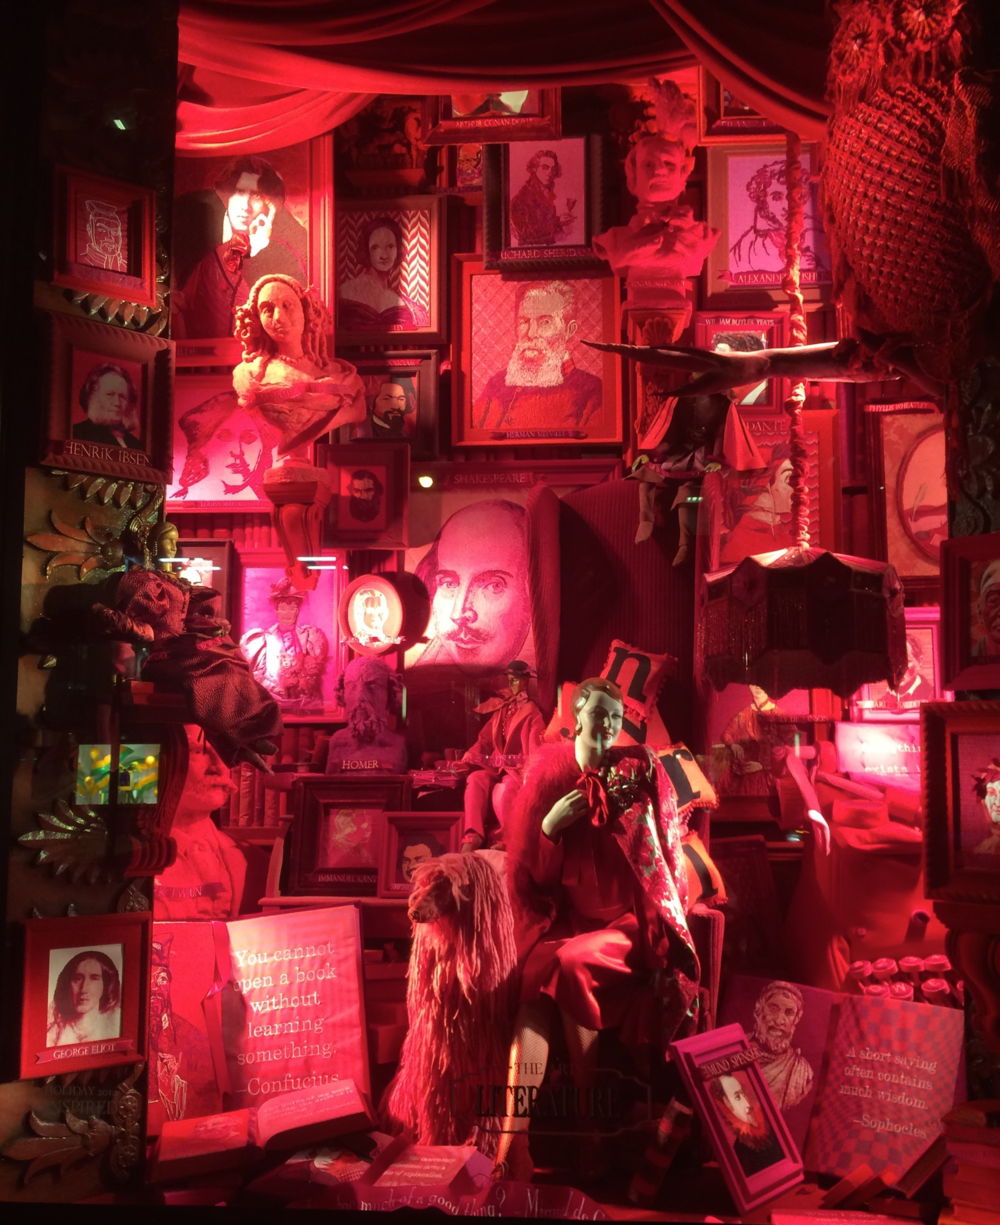 Bergdoff Goodman's Window Display - Christmas 2014